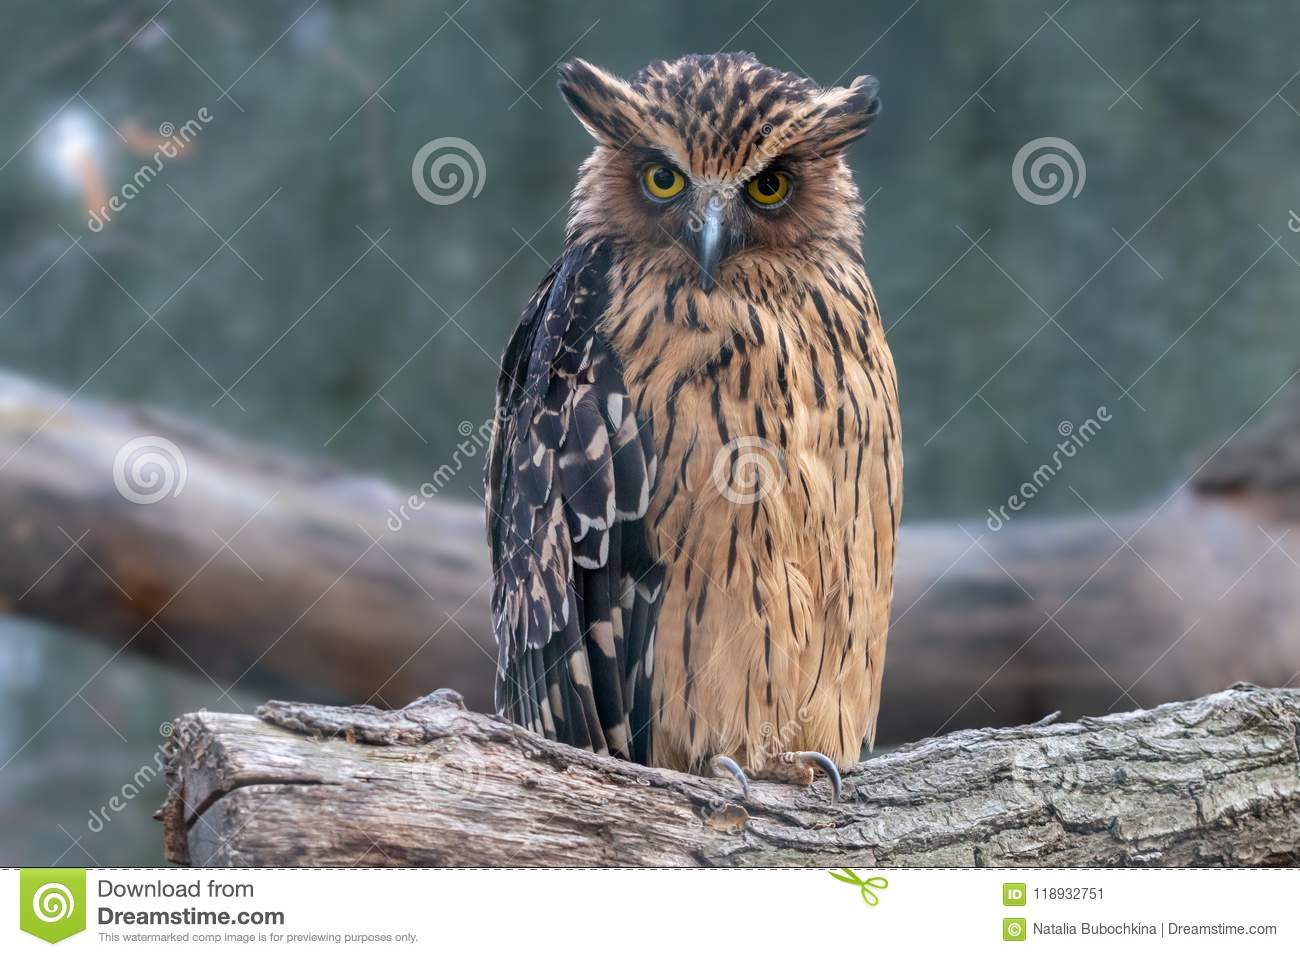 Buffy fish-owl sitting on a log with blurred background